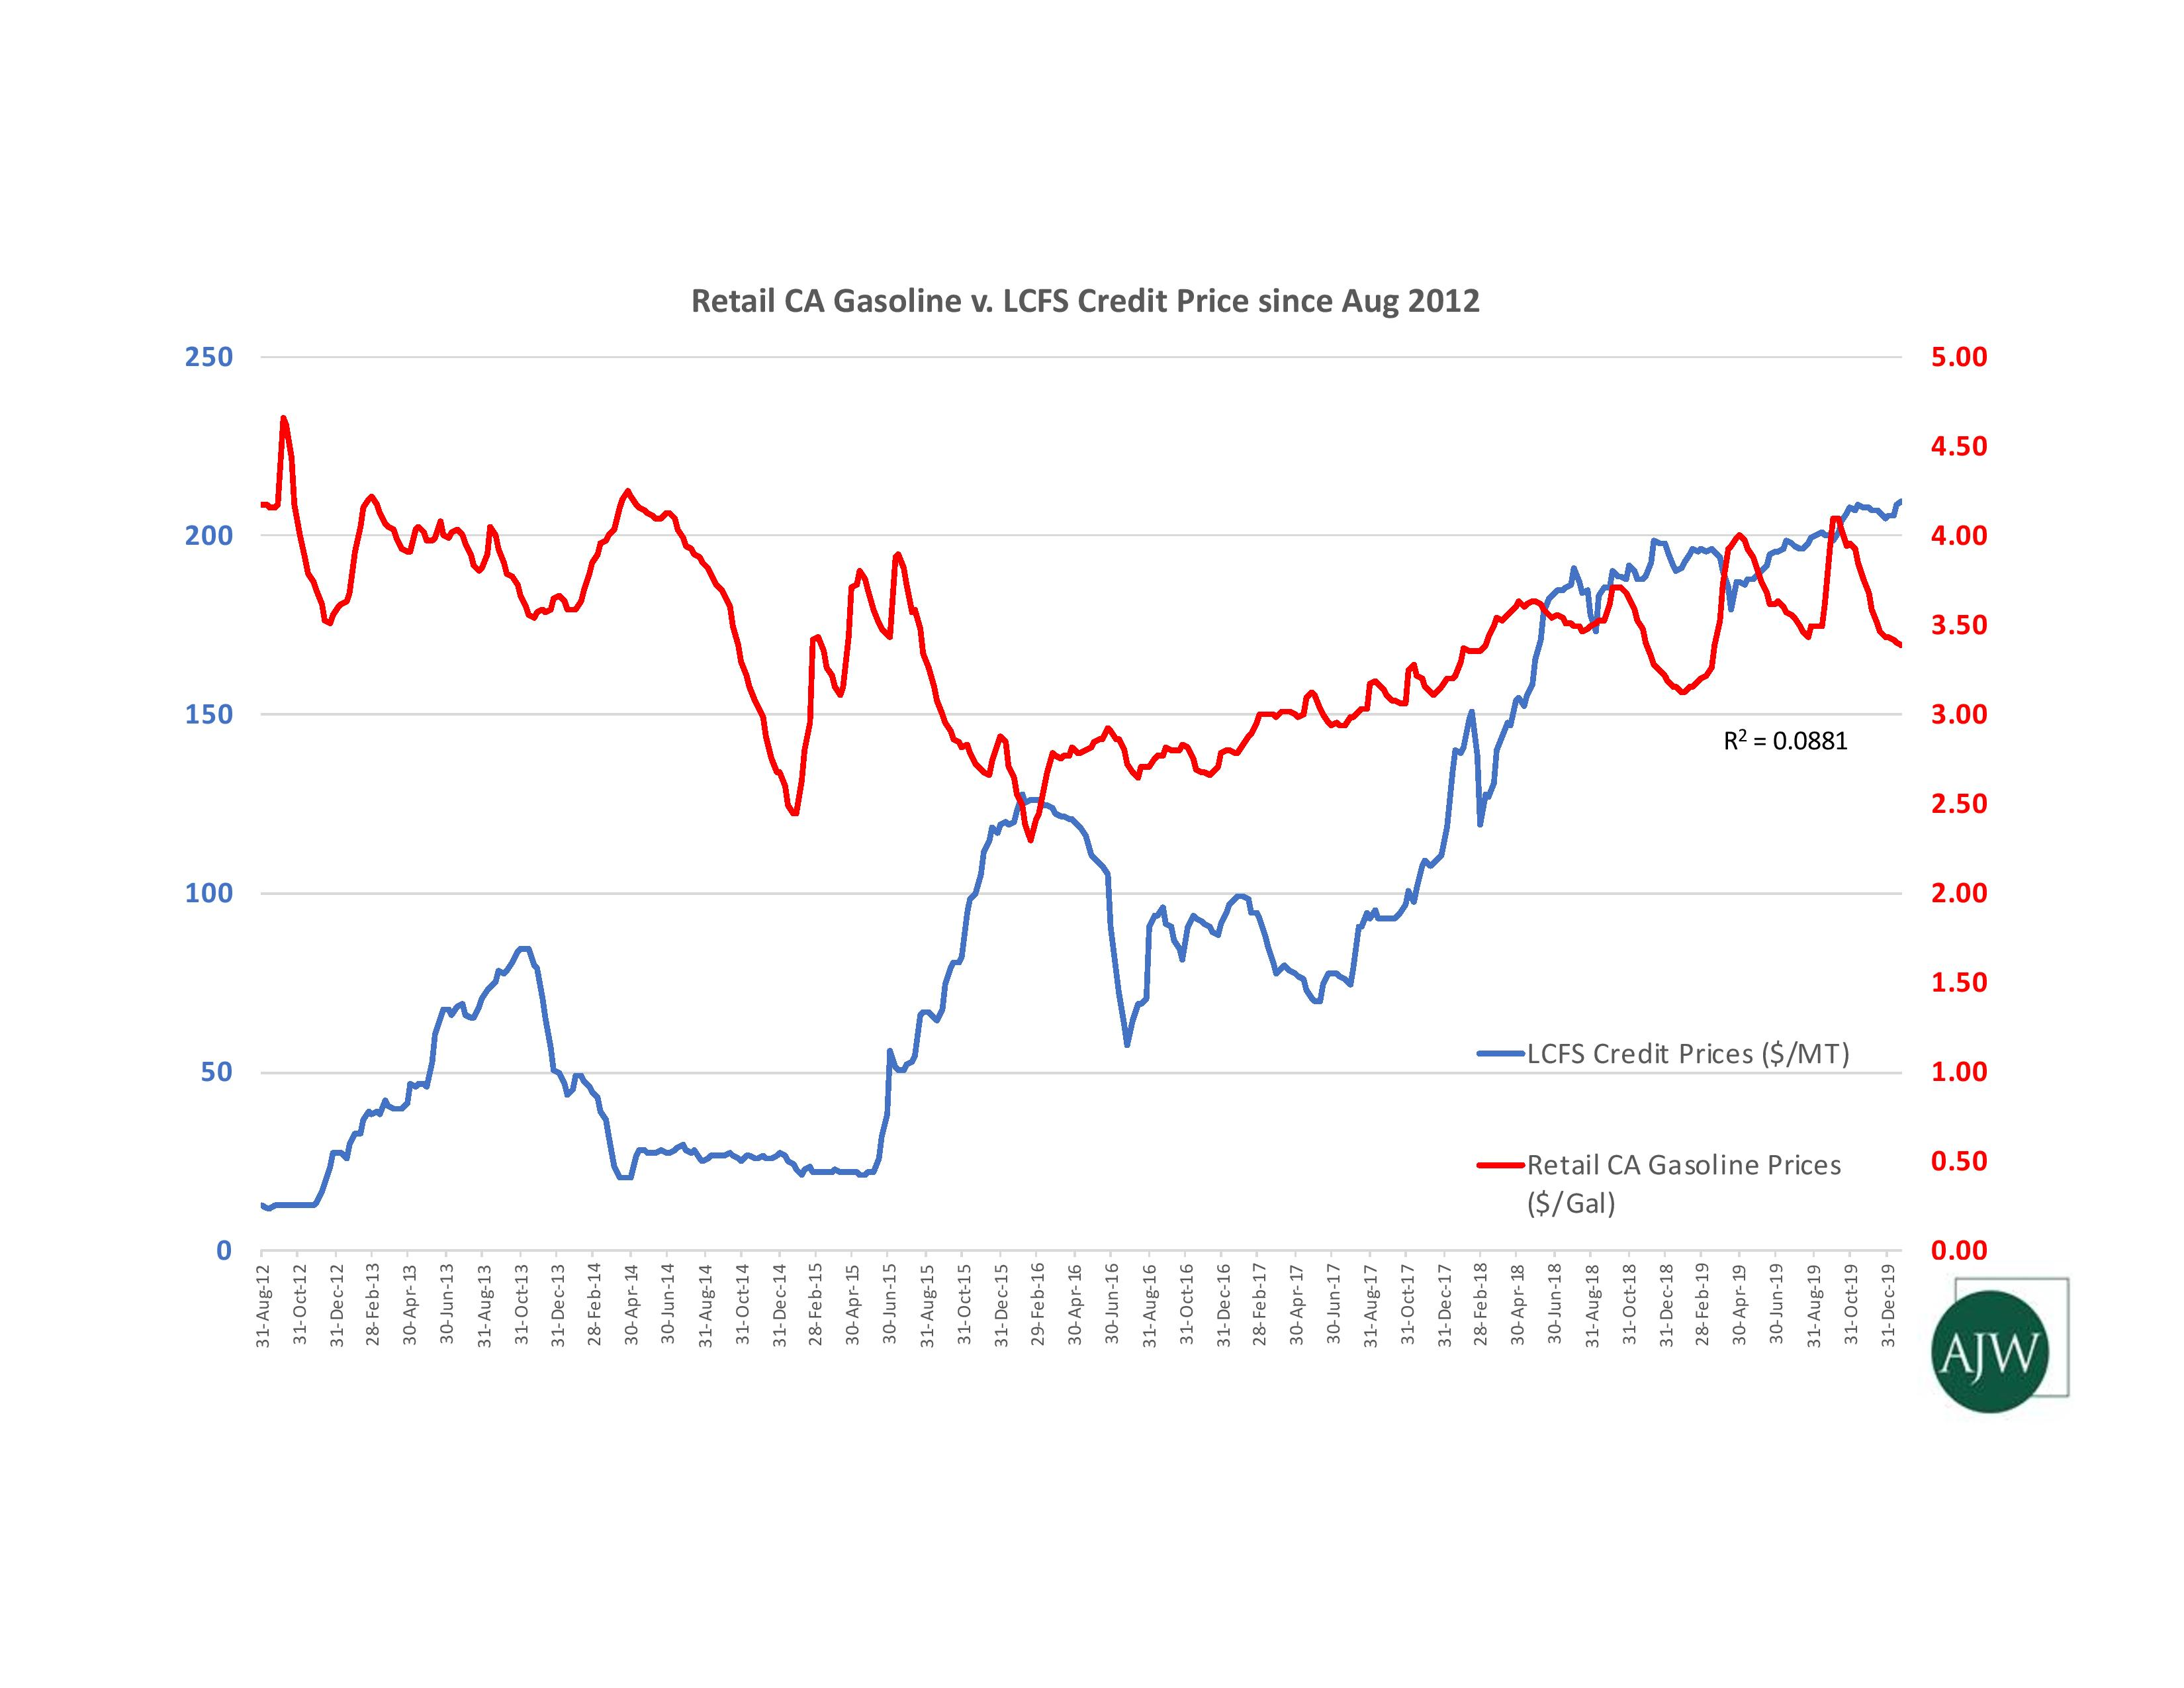 Retail CA Gasoline v. LCFS Credit Price since Aug 2012